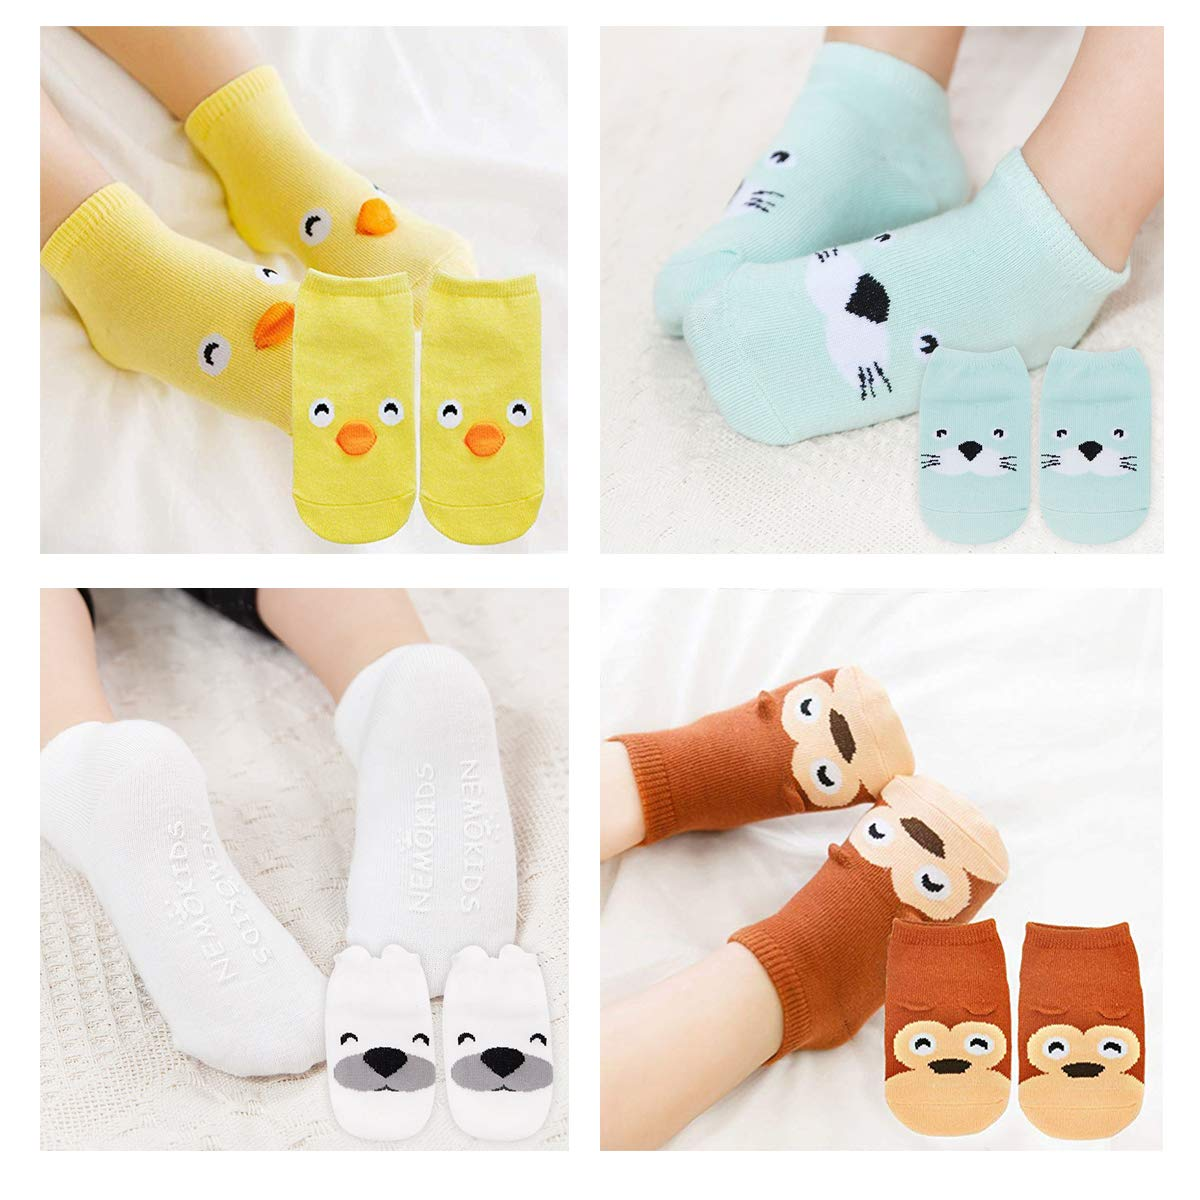 AidShunN Baby Socks Toddler Anti-Slip Cute Cartoon Animal Cotton Unisex Kids Newborn Infant Spring Autumn 4 Pairs,2-4 Years Old,M